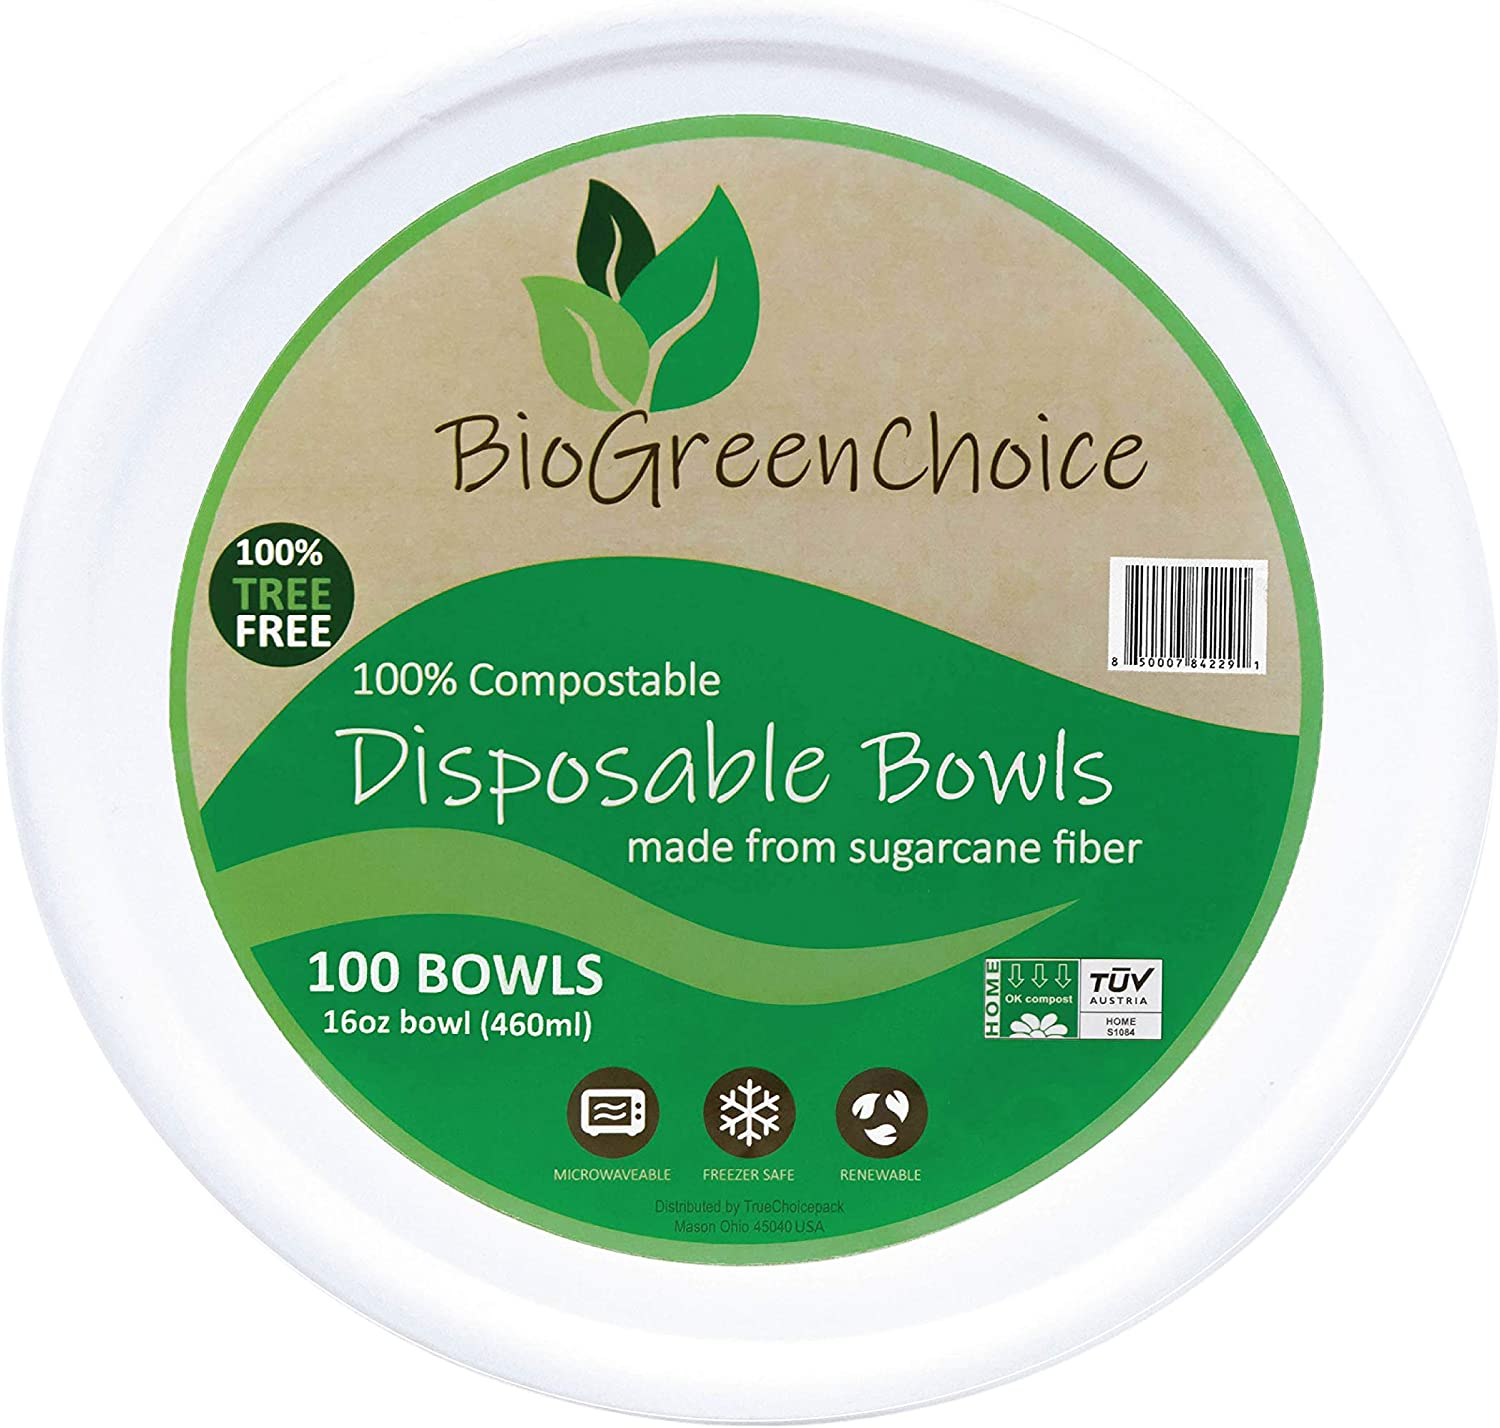 BioGreenChoice Compostable White 16 oz. large Paper bowls(100 Count),Eco-Friendly Biodegradable Bagasse/Natural Sugarcane Disposable Soup Bowl, Hefty & Heavy-Duty bowls for Chili & Soup–Microwave safe